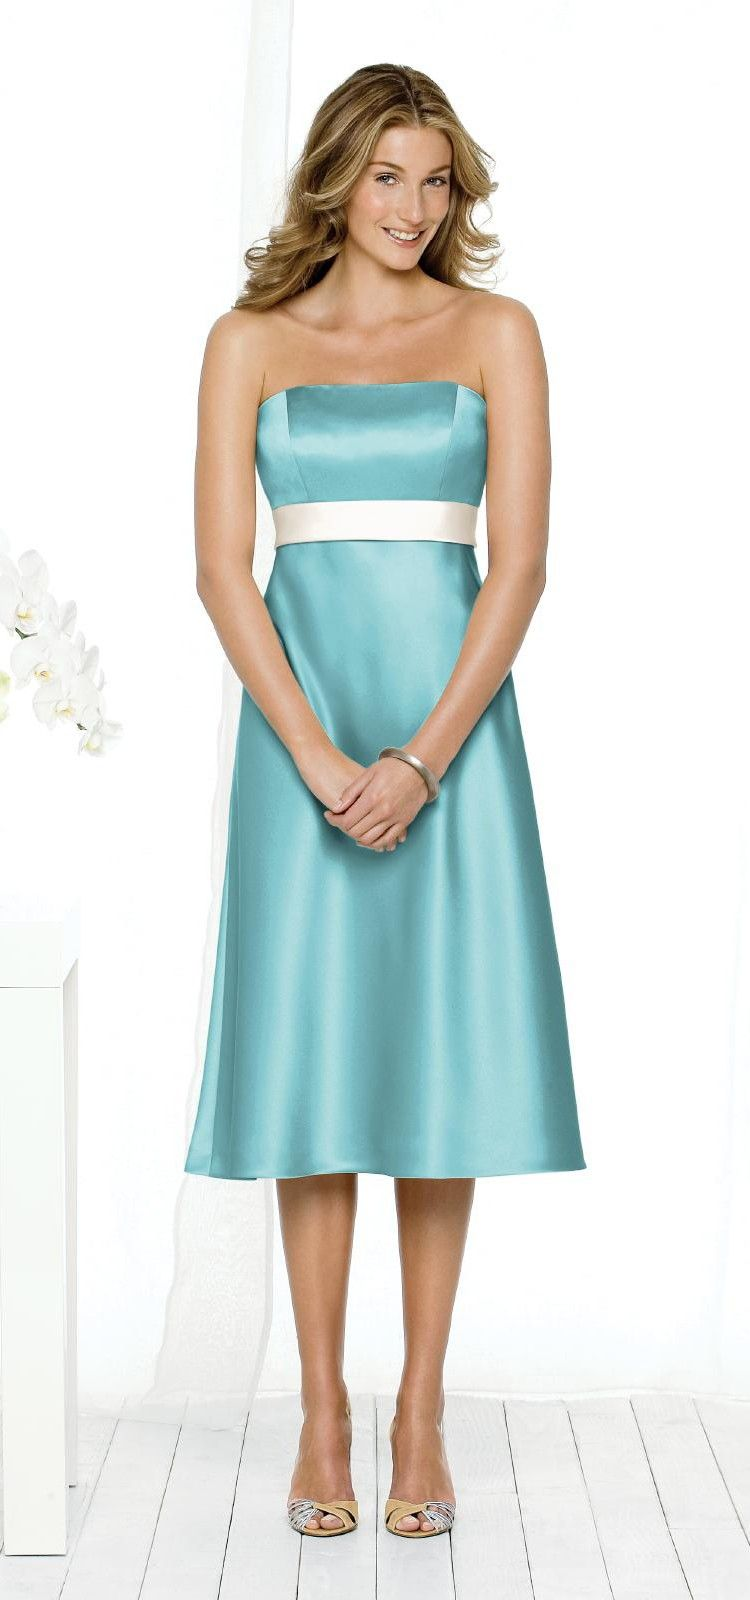 This would be a great bridesmaid dress iud want it in black with a